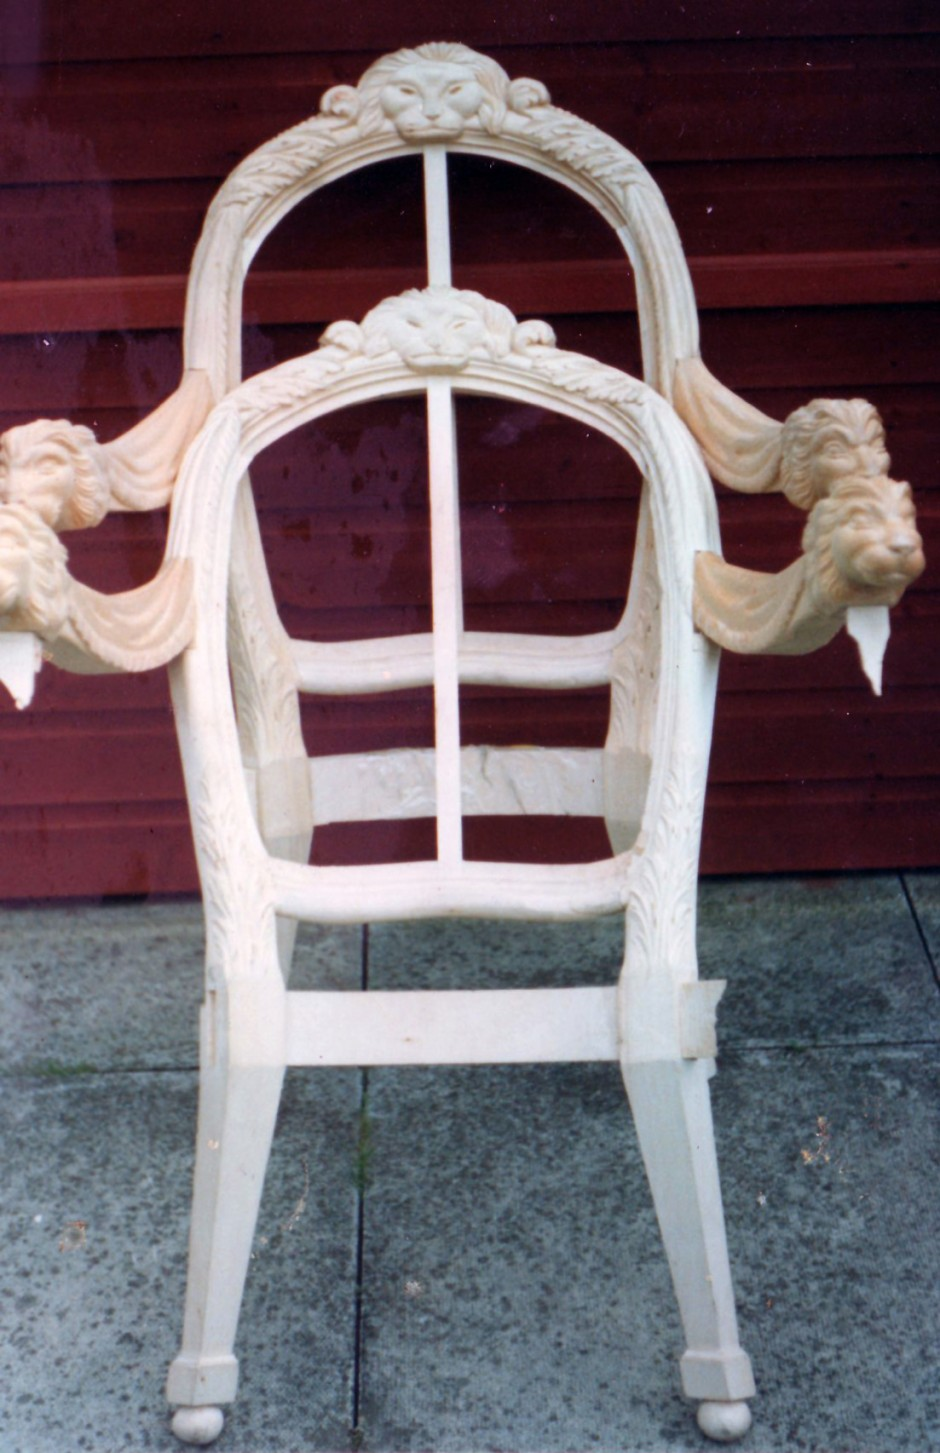 Work in progress - Chair backs carved. - elton john chairs wooden carved chairs famour